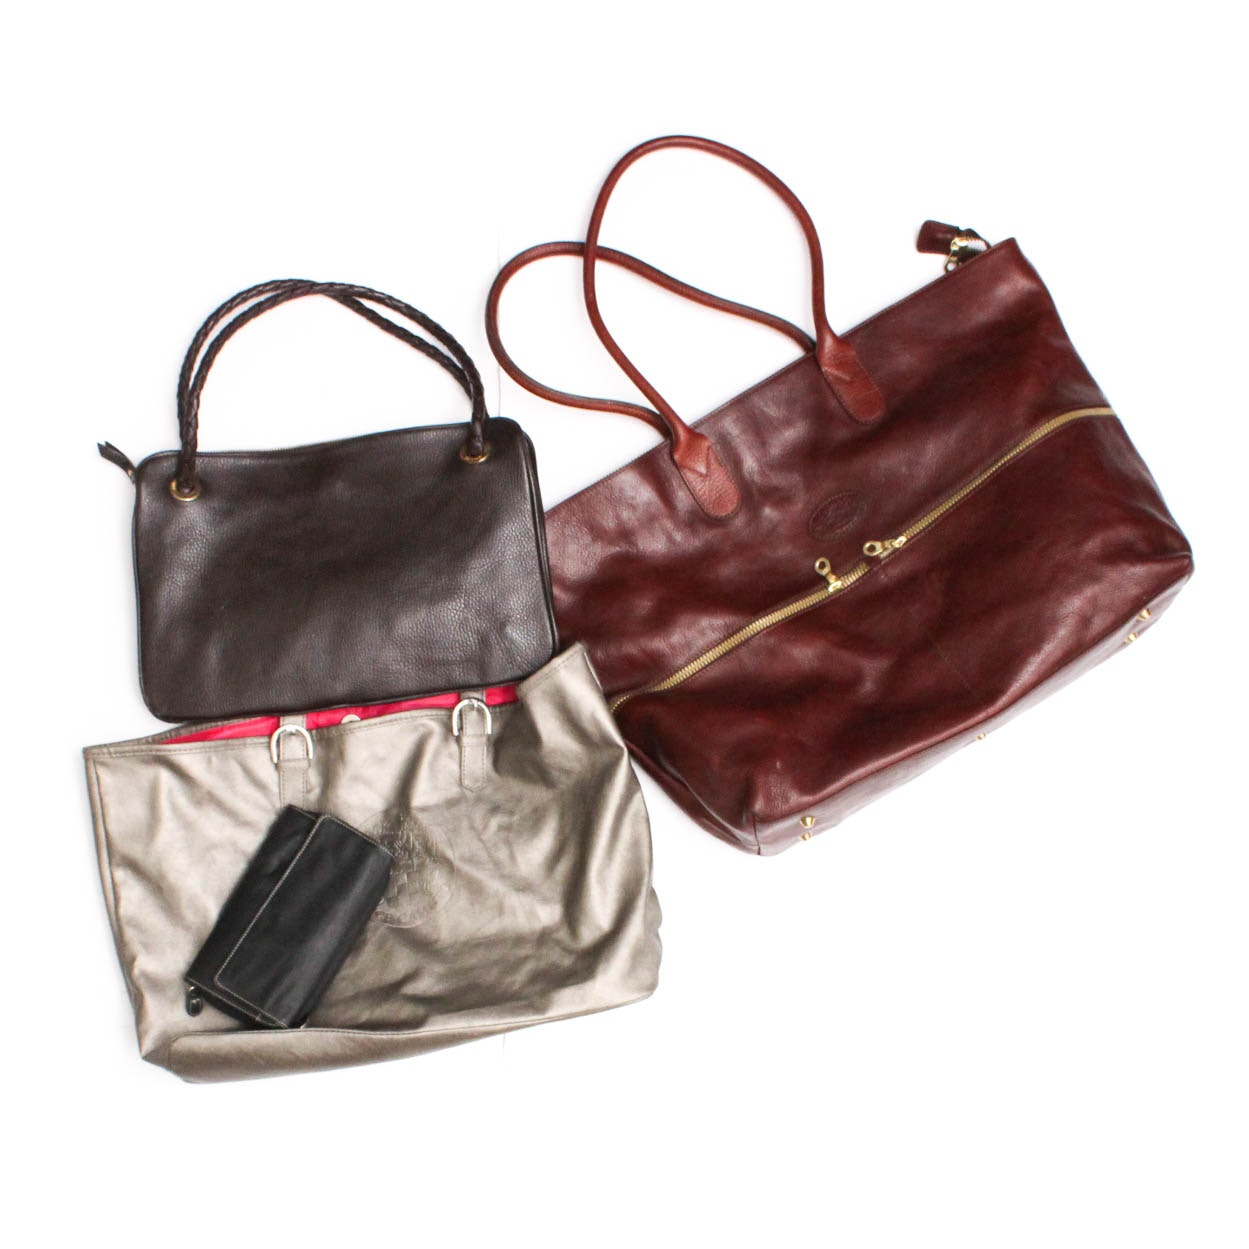 Tangora, Desmo and Vince Camuto Leather Handbag Collection and Wallet